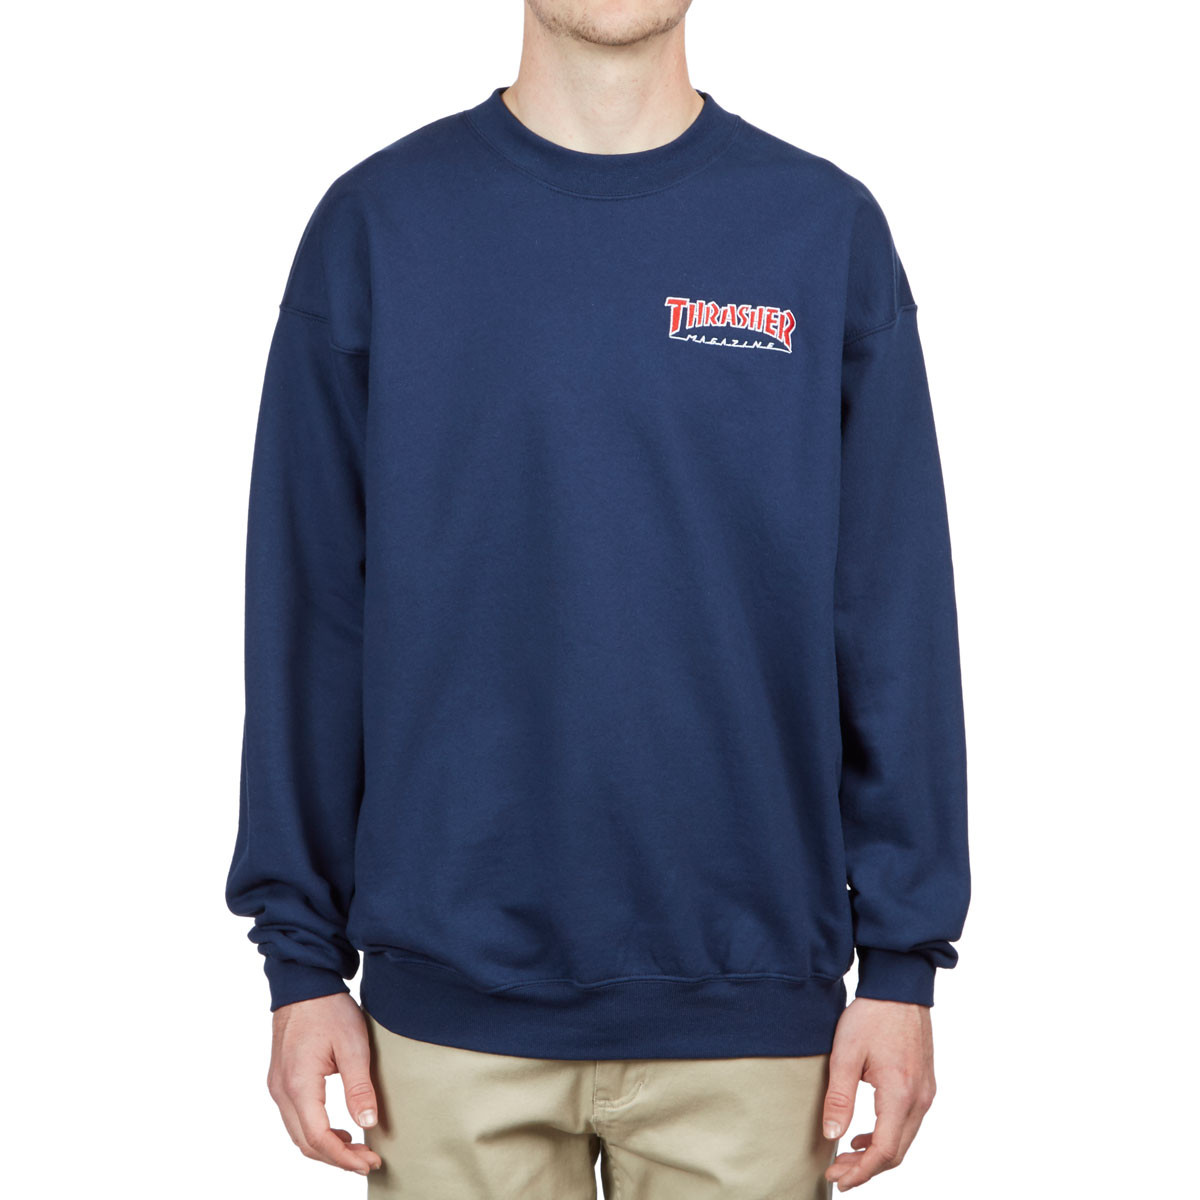 641973294415 Thrasher Embroidered Outlined Crew Sweatshirt - Navy